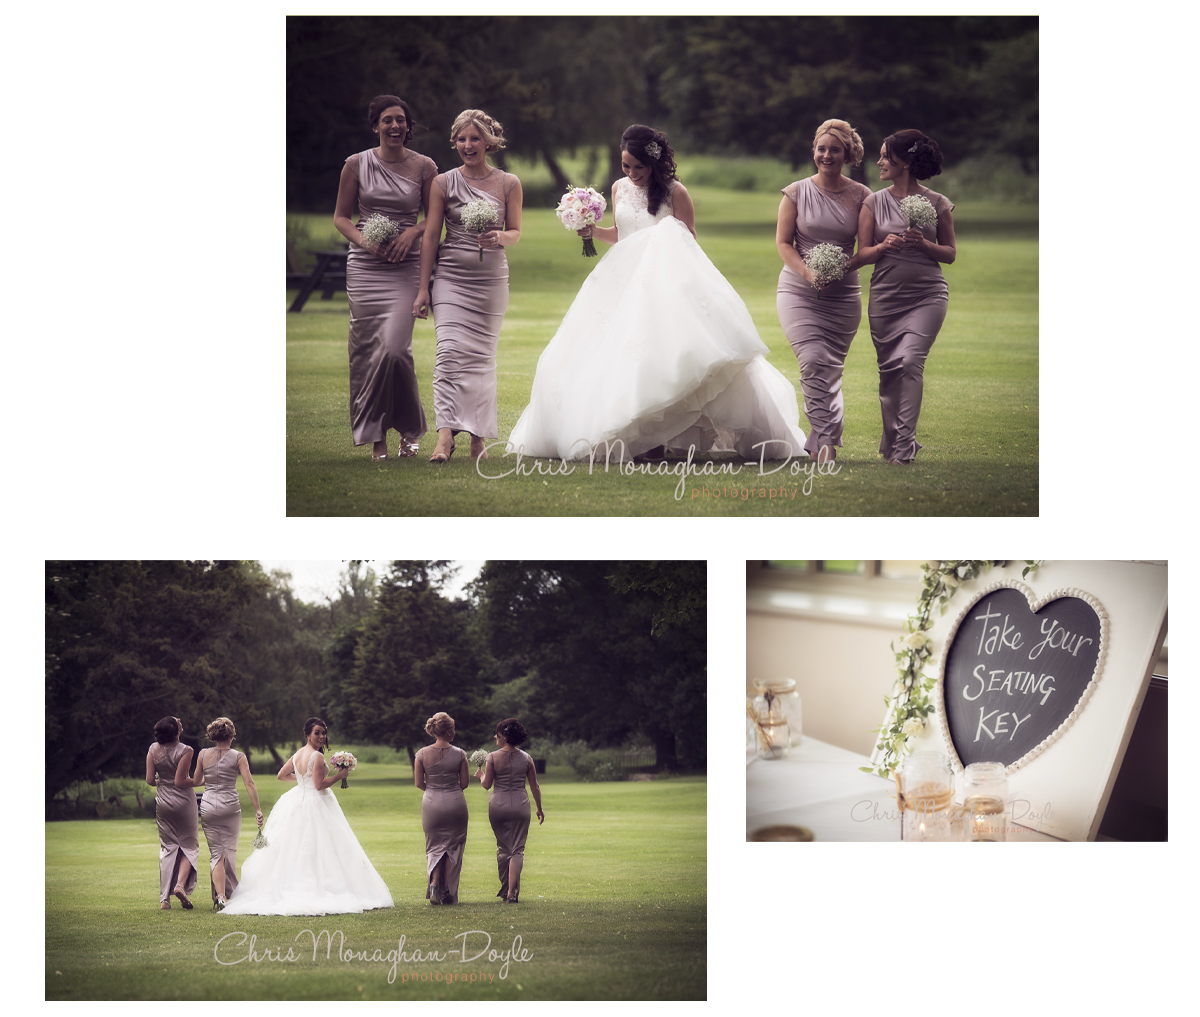 Hardwick Hall Wedding Chris Monaghan-Doyle Photography 10